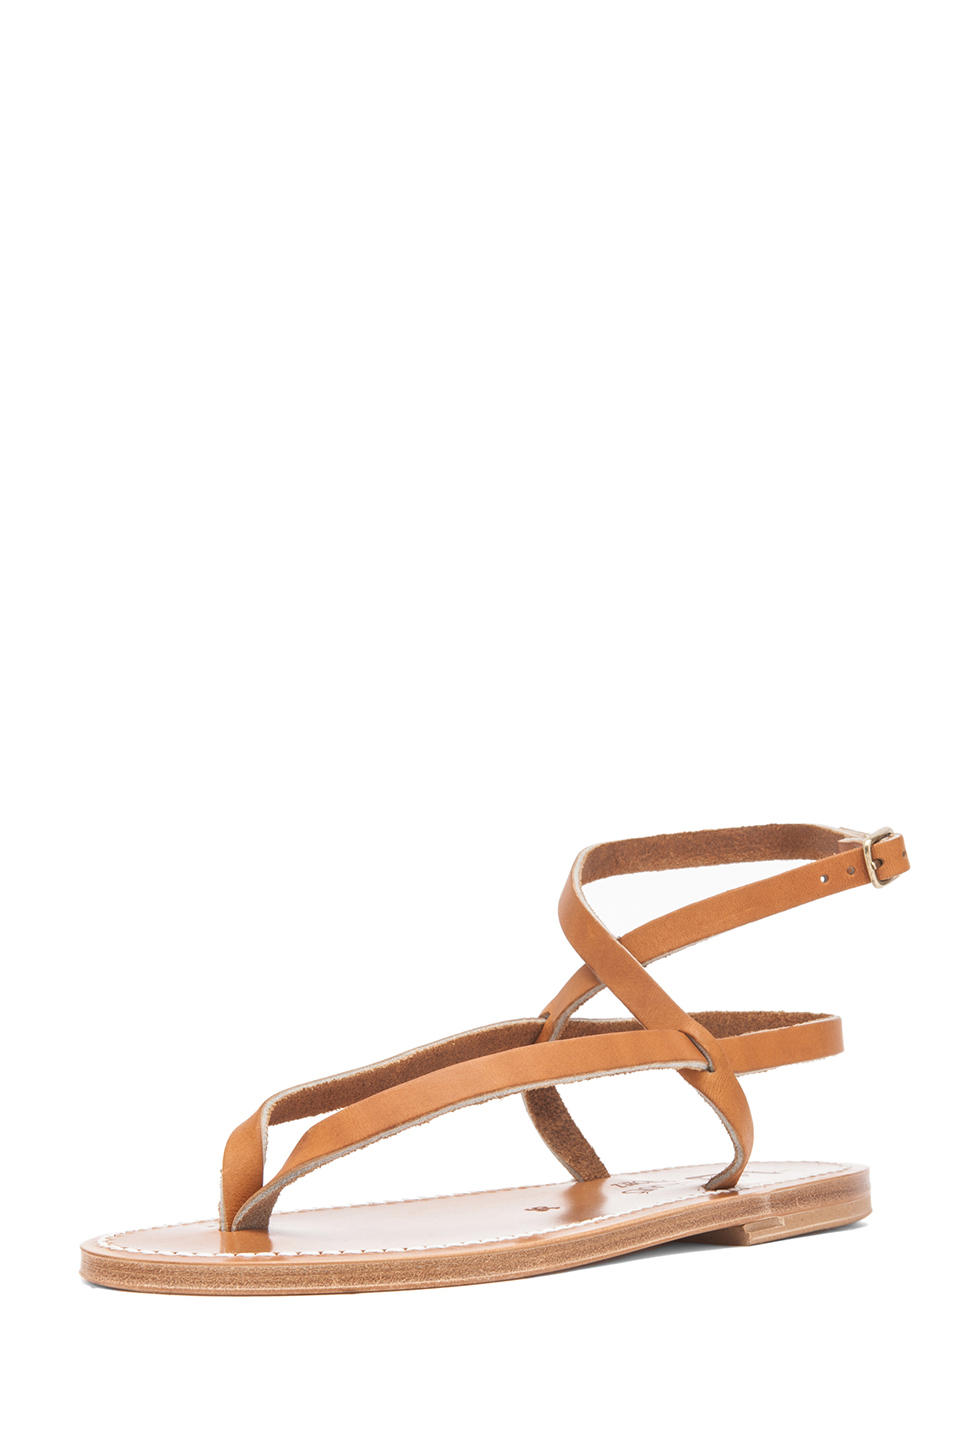 K Jacques|Delta Ankle Strap Sandals in Natural